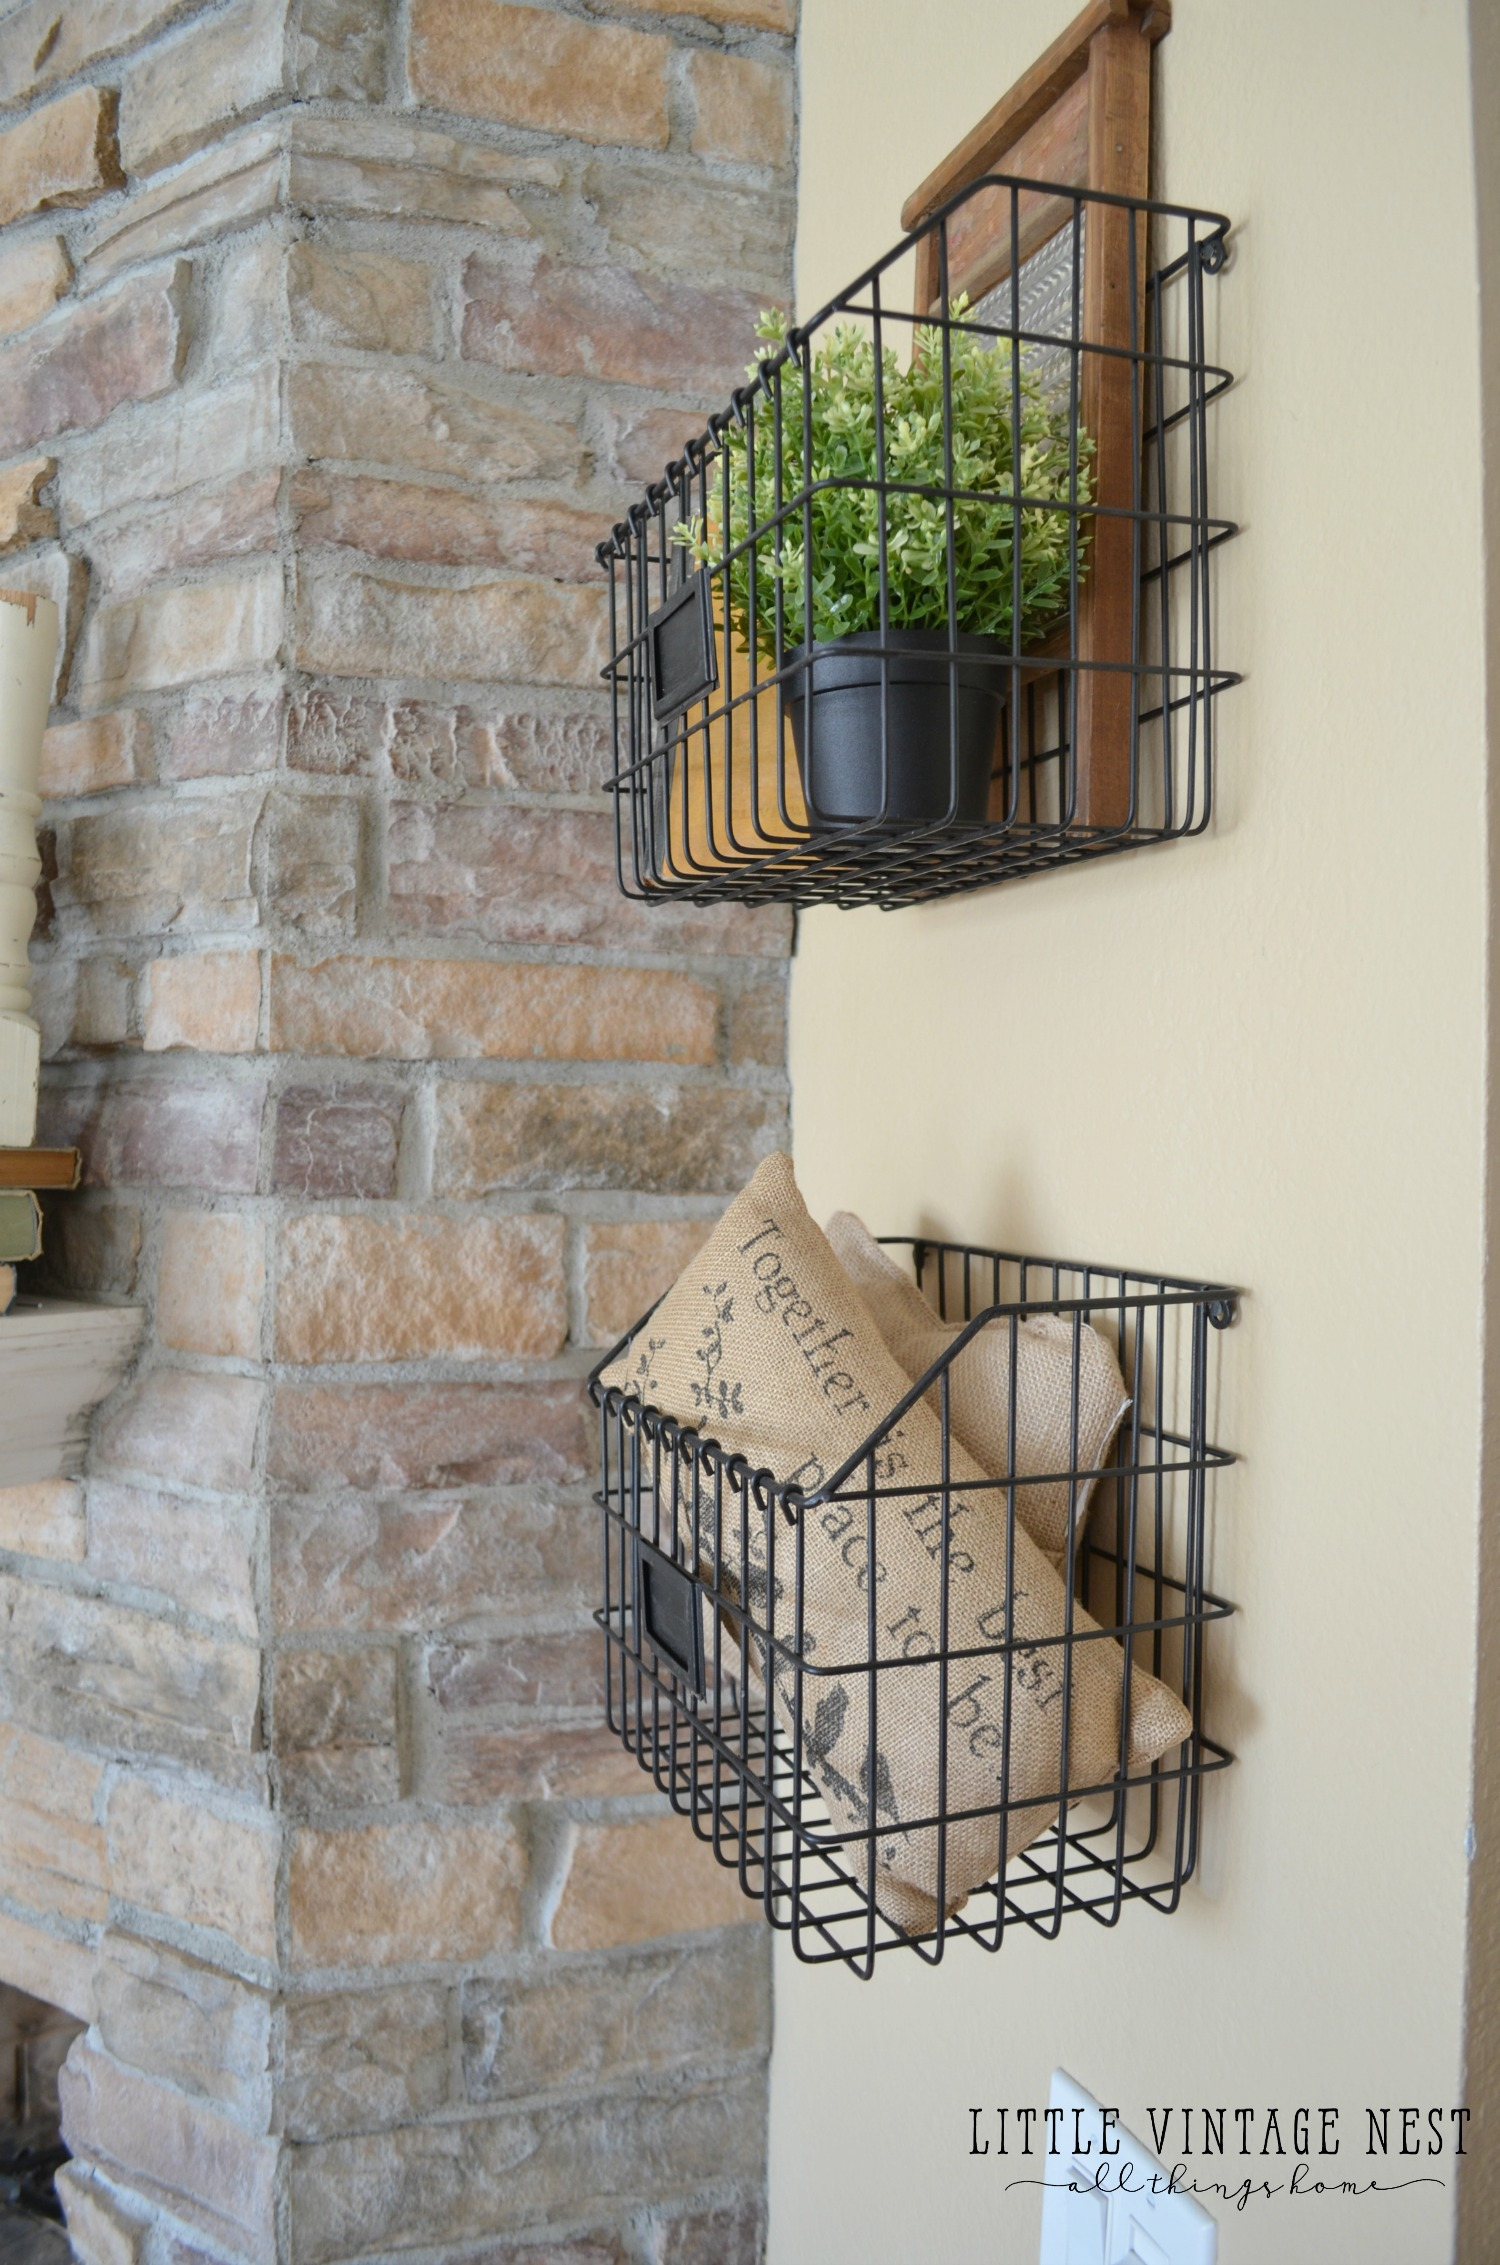 Farmhouse Style Decorating With Wire Baskets Little Vintage Nest